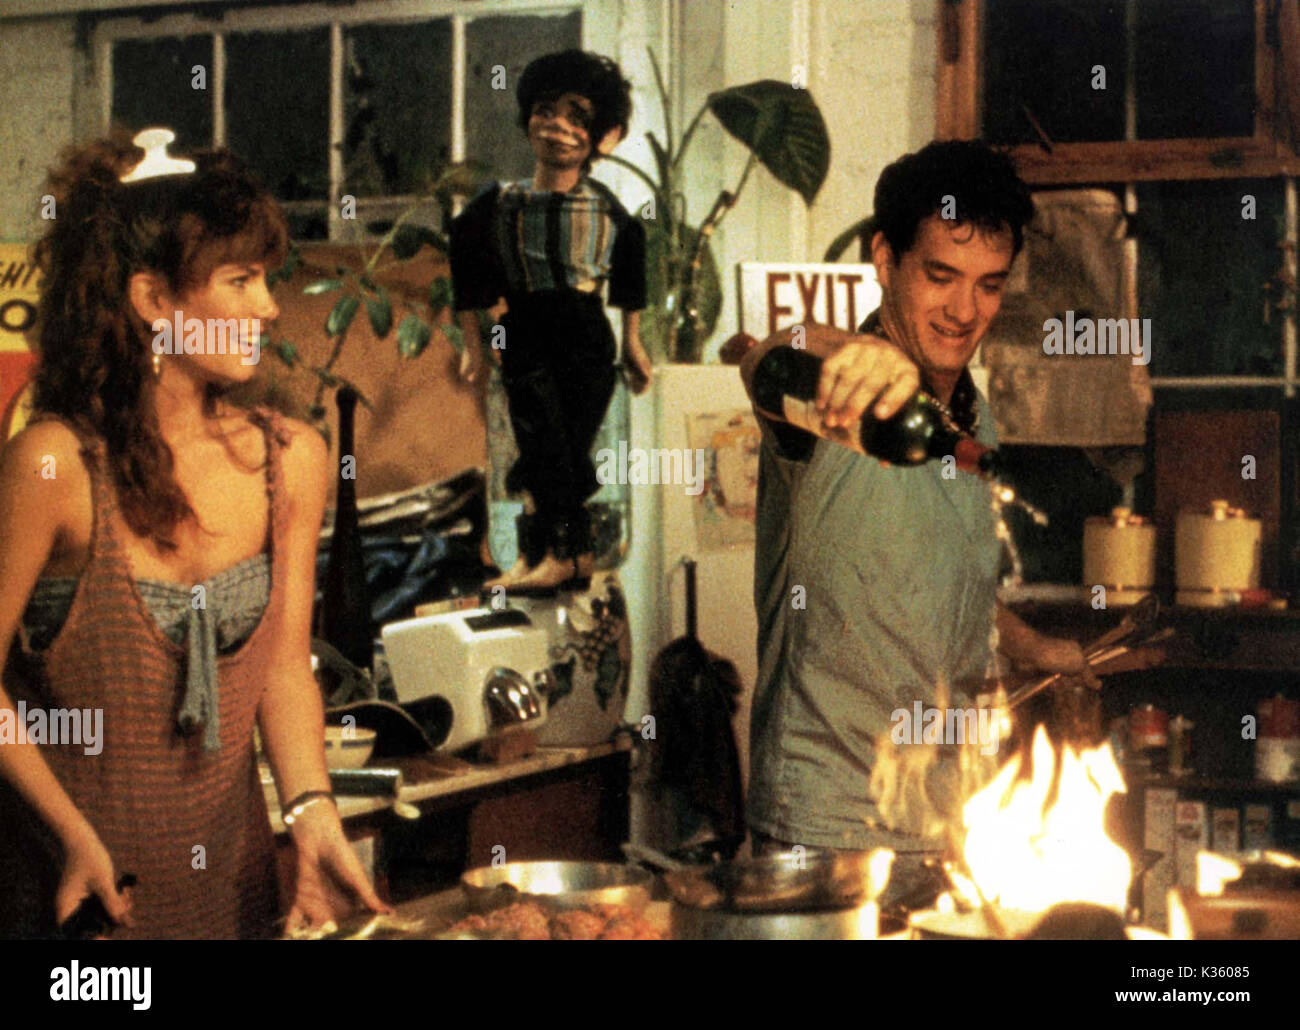 BACHELOR PARTY TAWNY KITAEN, TOM HANKS Date: 1984 Stock Photo ...